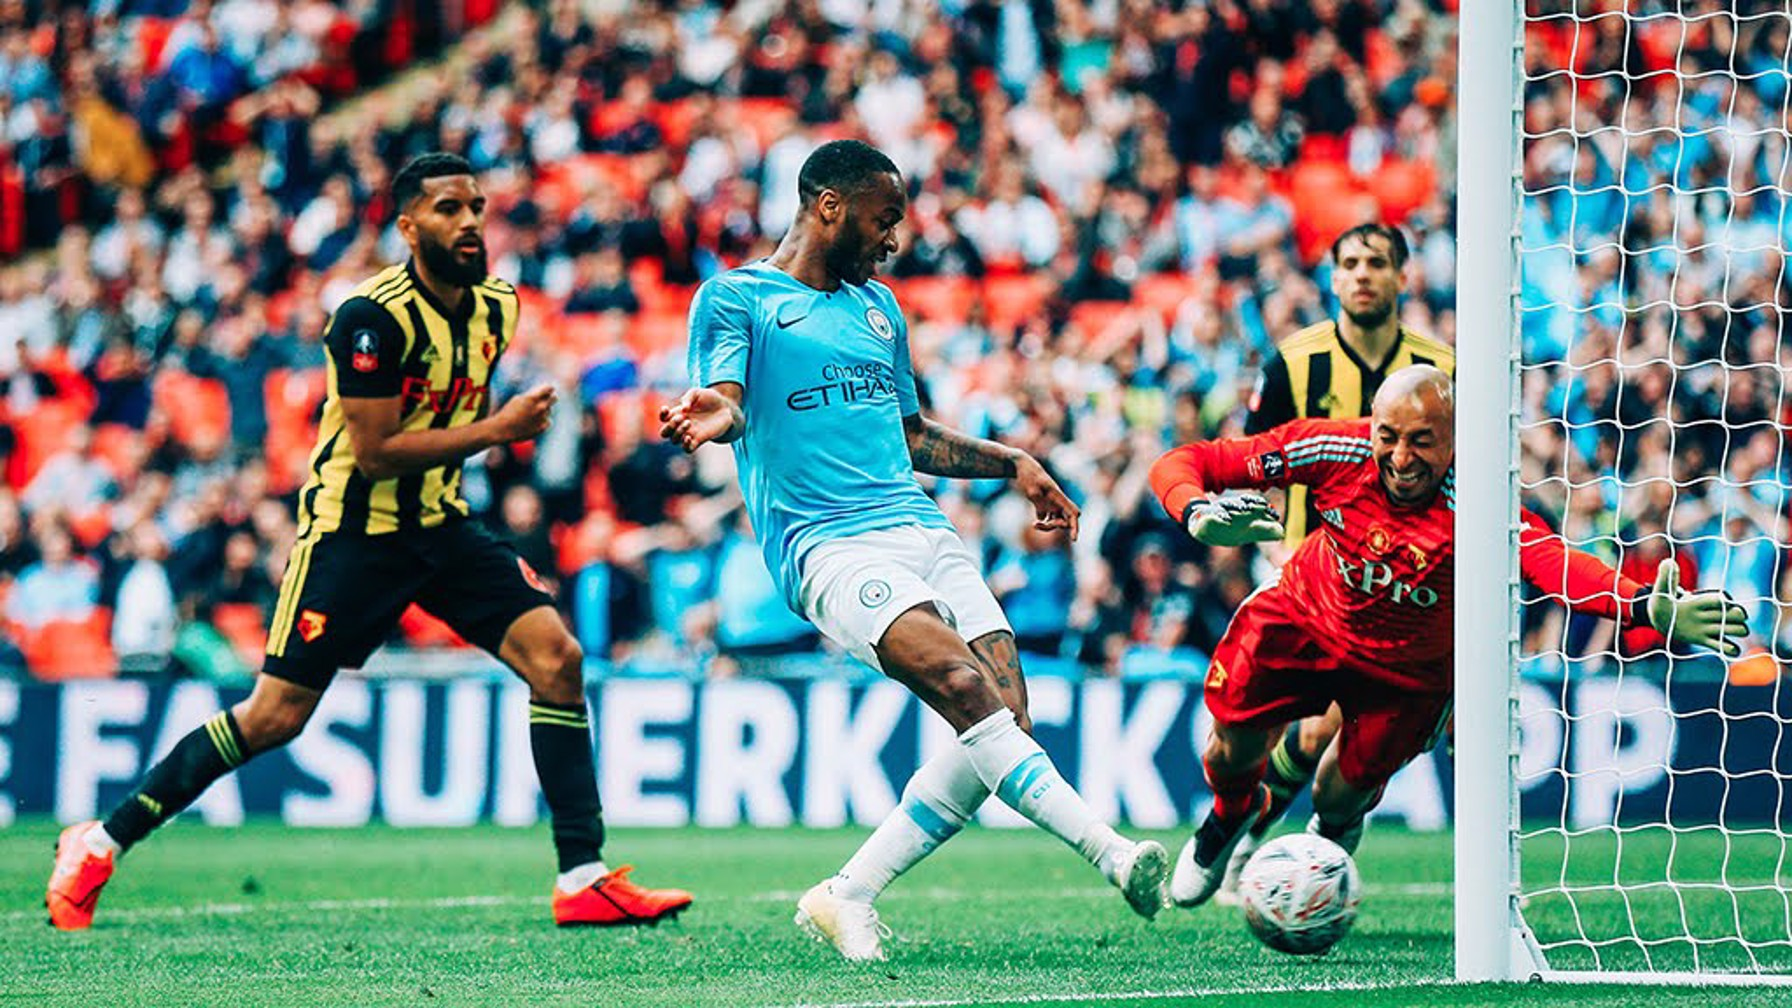 TAP IN: Raheem adds further gloss to the score